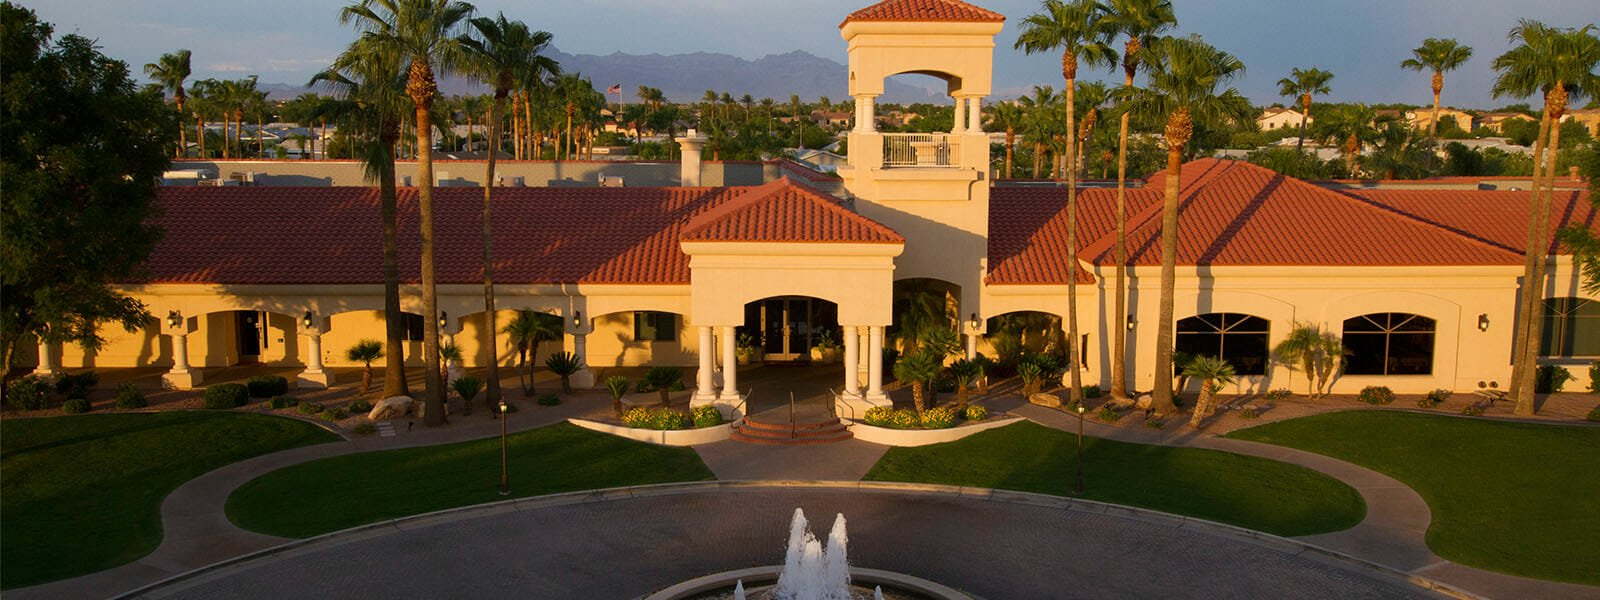 Las Palmas Grand | Arizona Active 55 Resort Community | AZ Real Estate